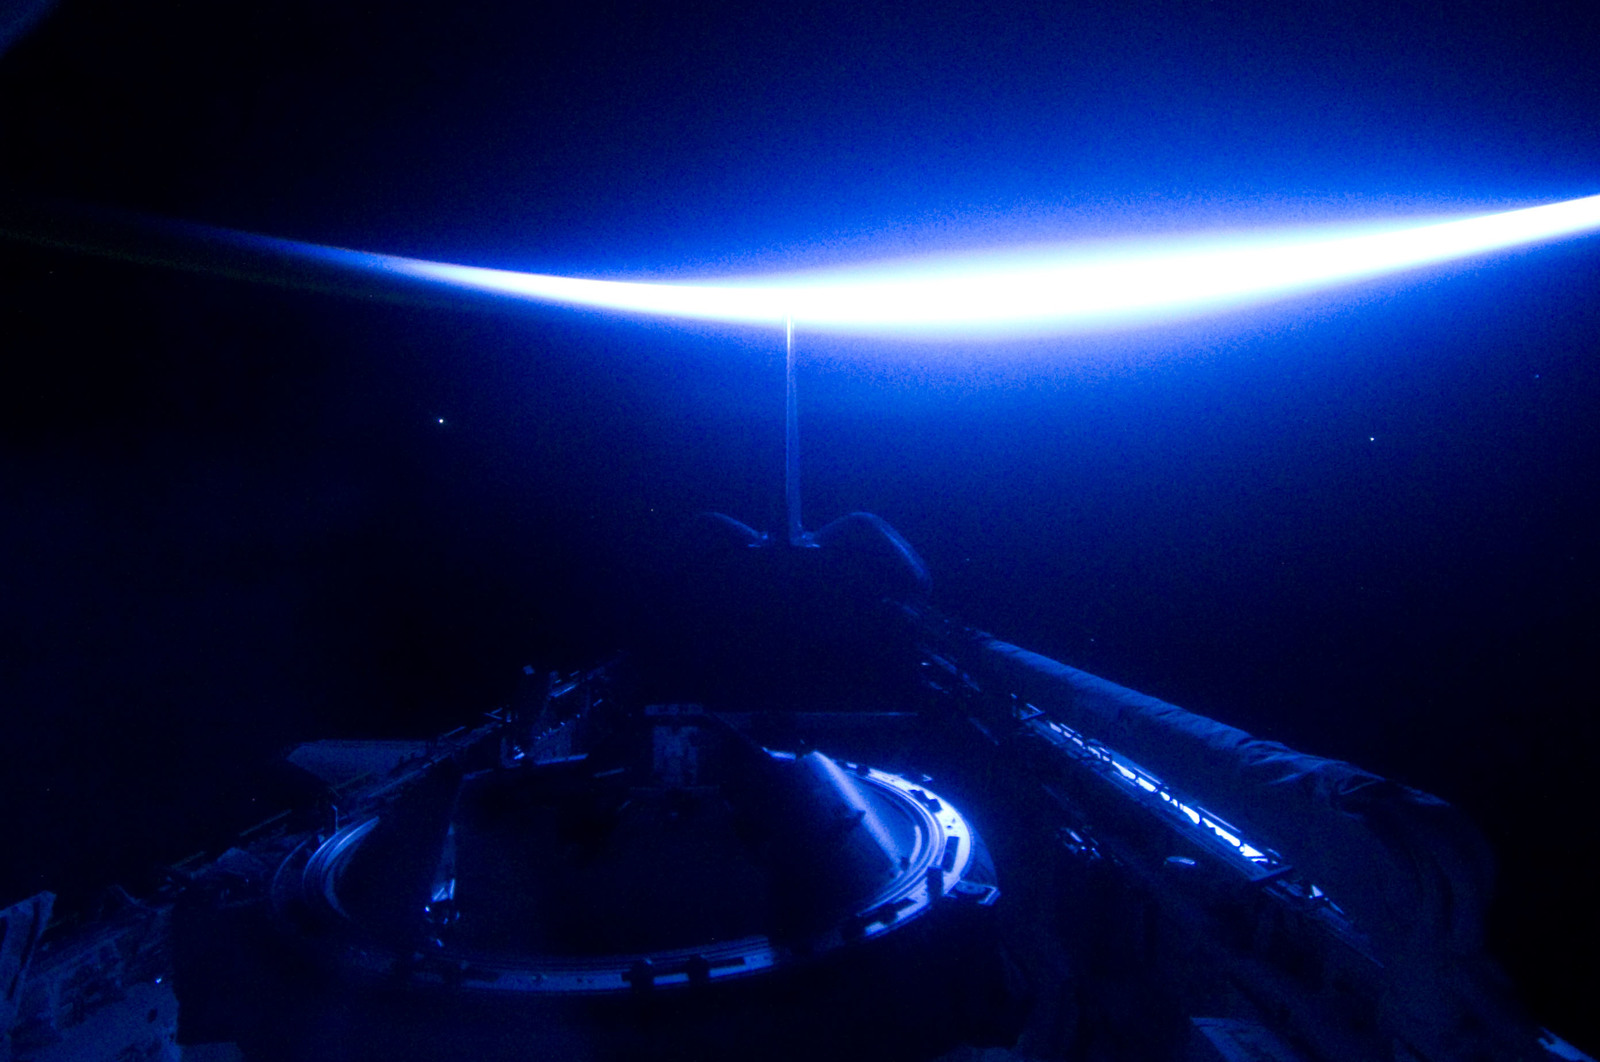 S134E012414 - STS-134 - View of Sun Rising from behind Earth's Horizon